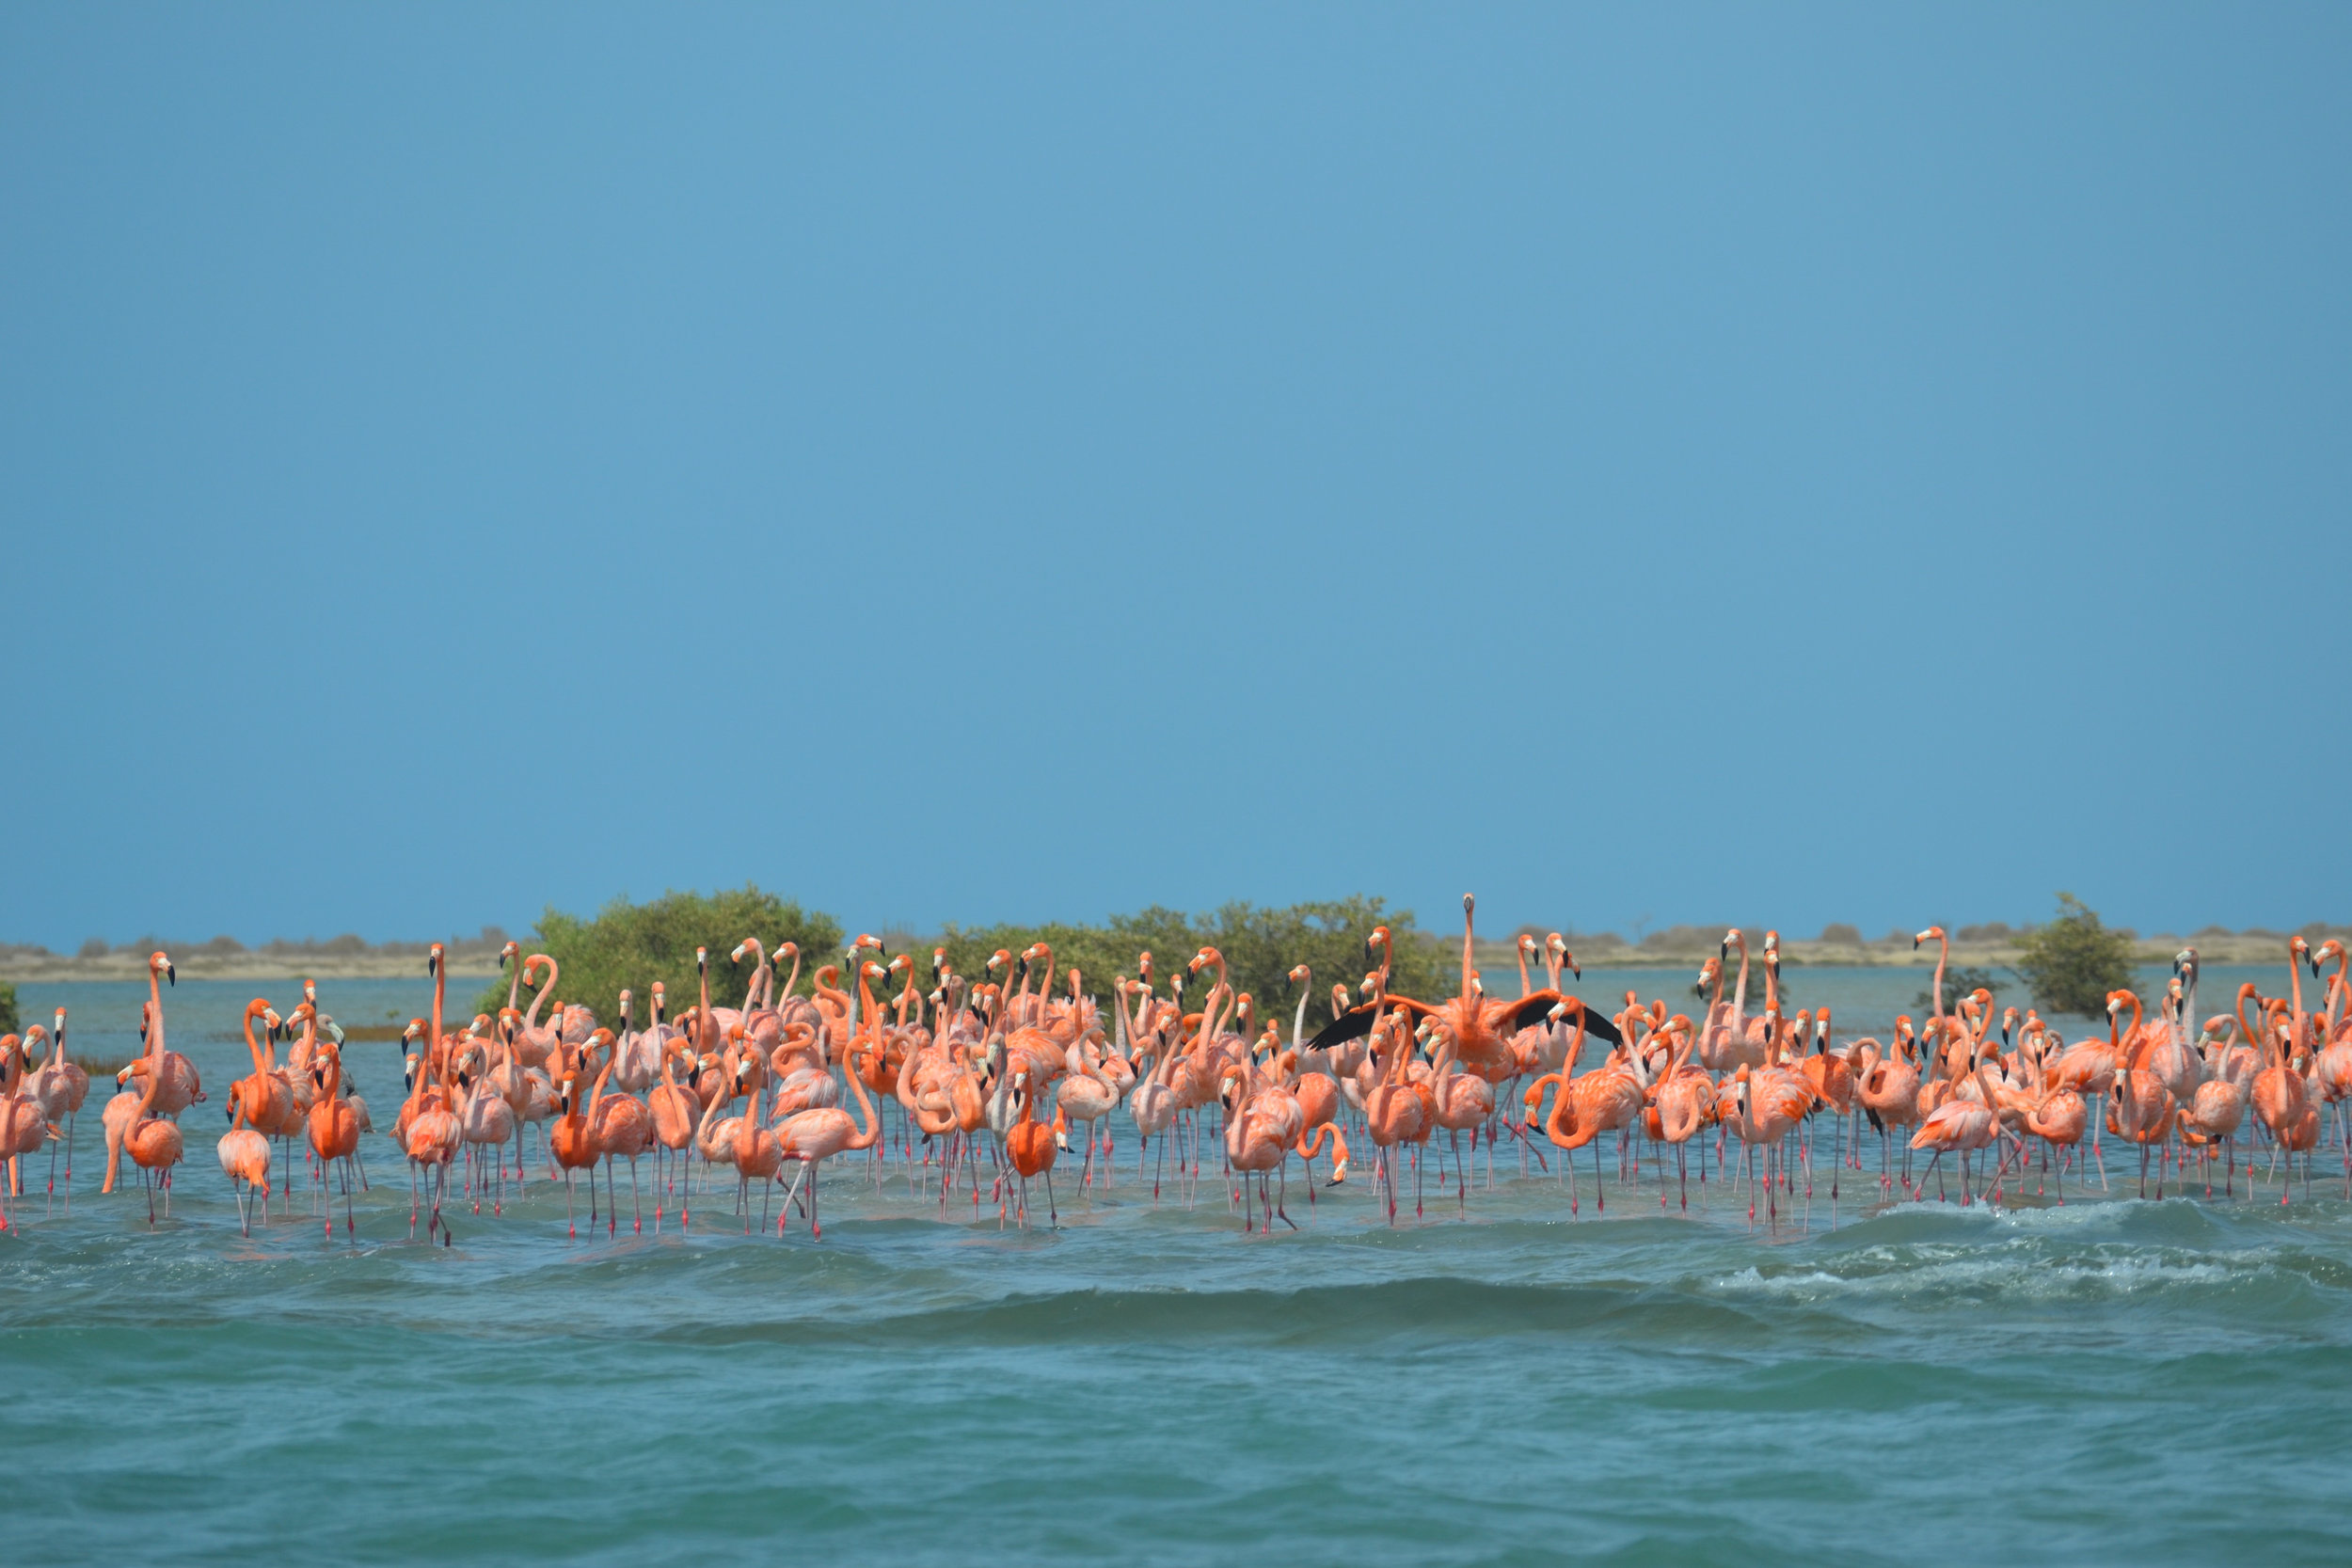 Flamingos, man. Who do they think they are?